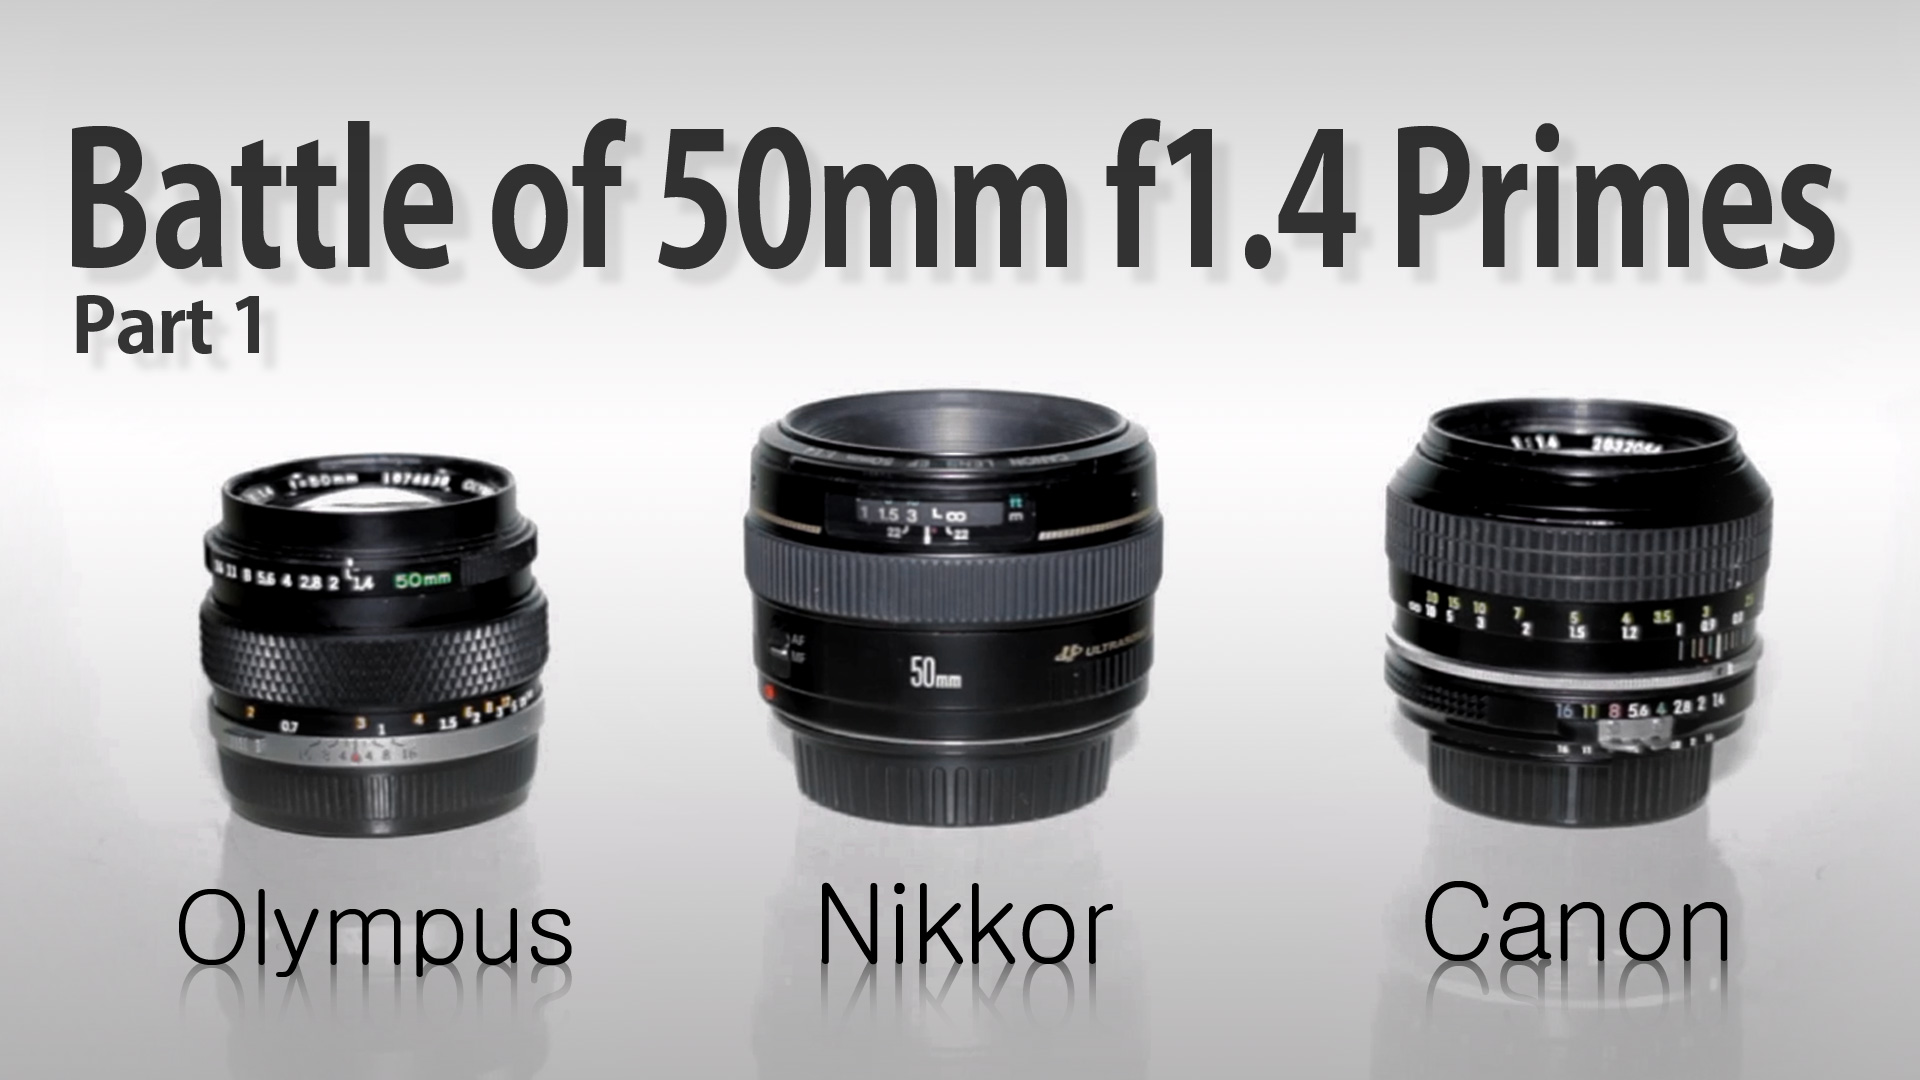 BATTLE of 50mm f/1.4 PRIMES. Olympus vs Canon vs Nikon